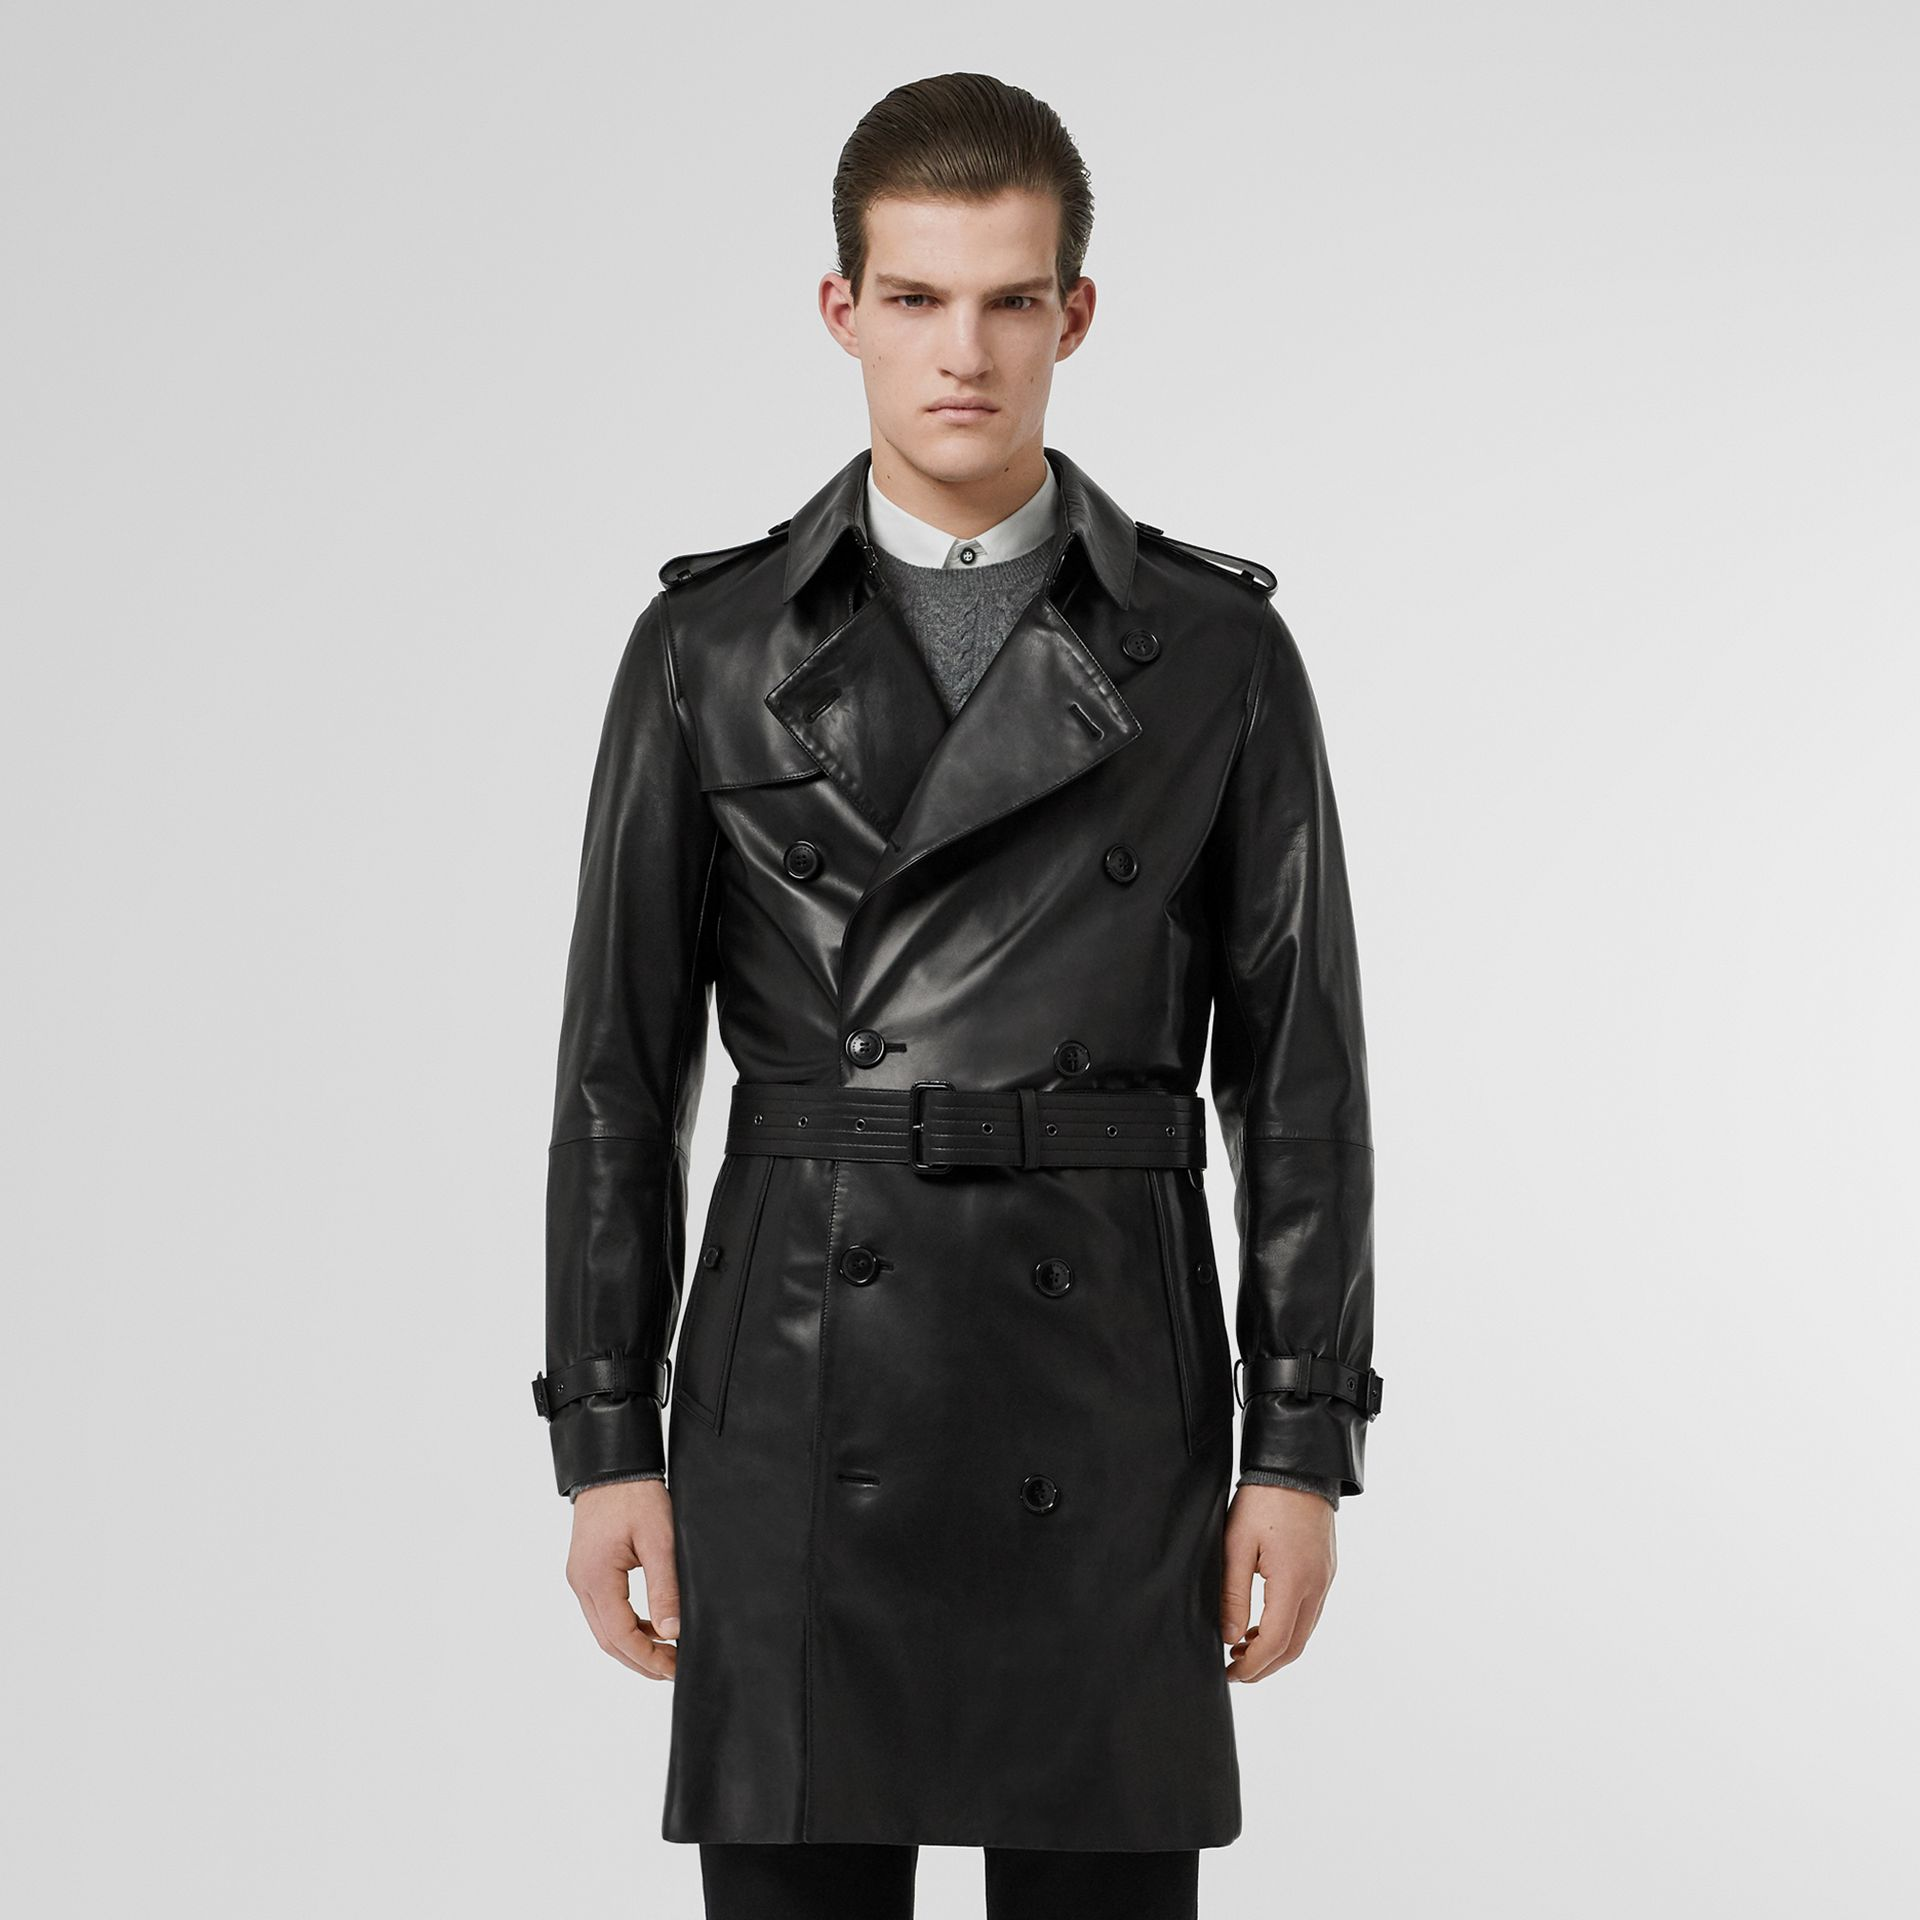 Lambskin Trench Coat in Black - Men | Burberry Australia - gallery image 6